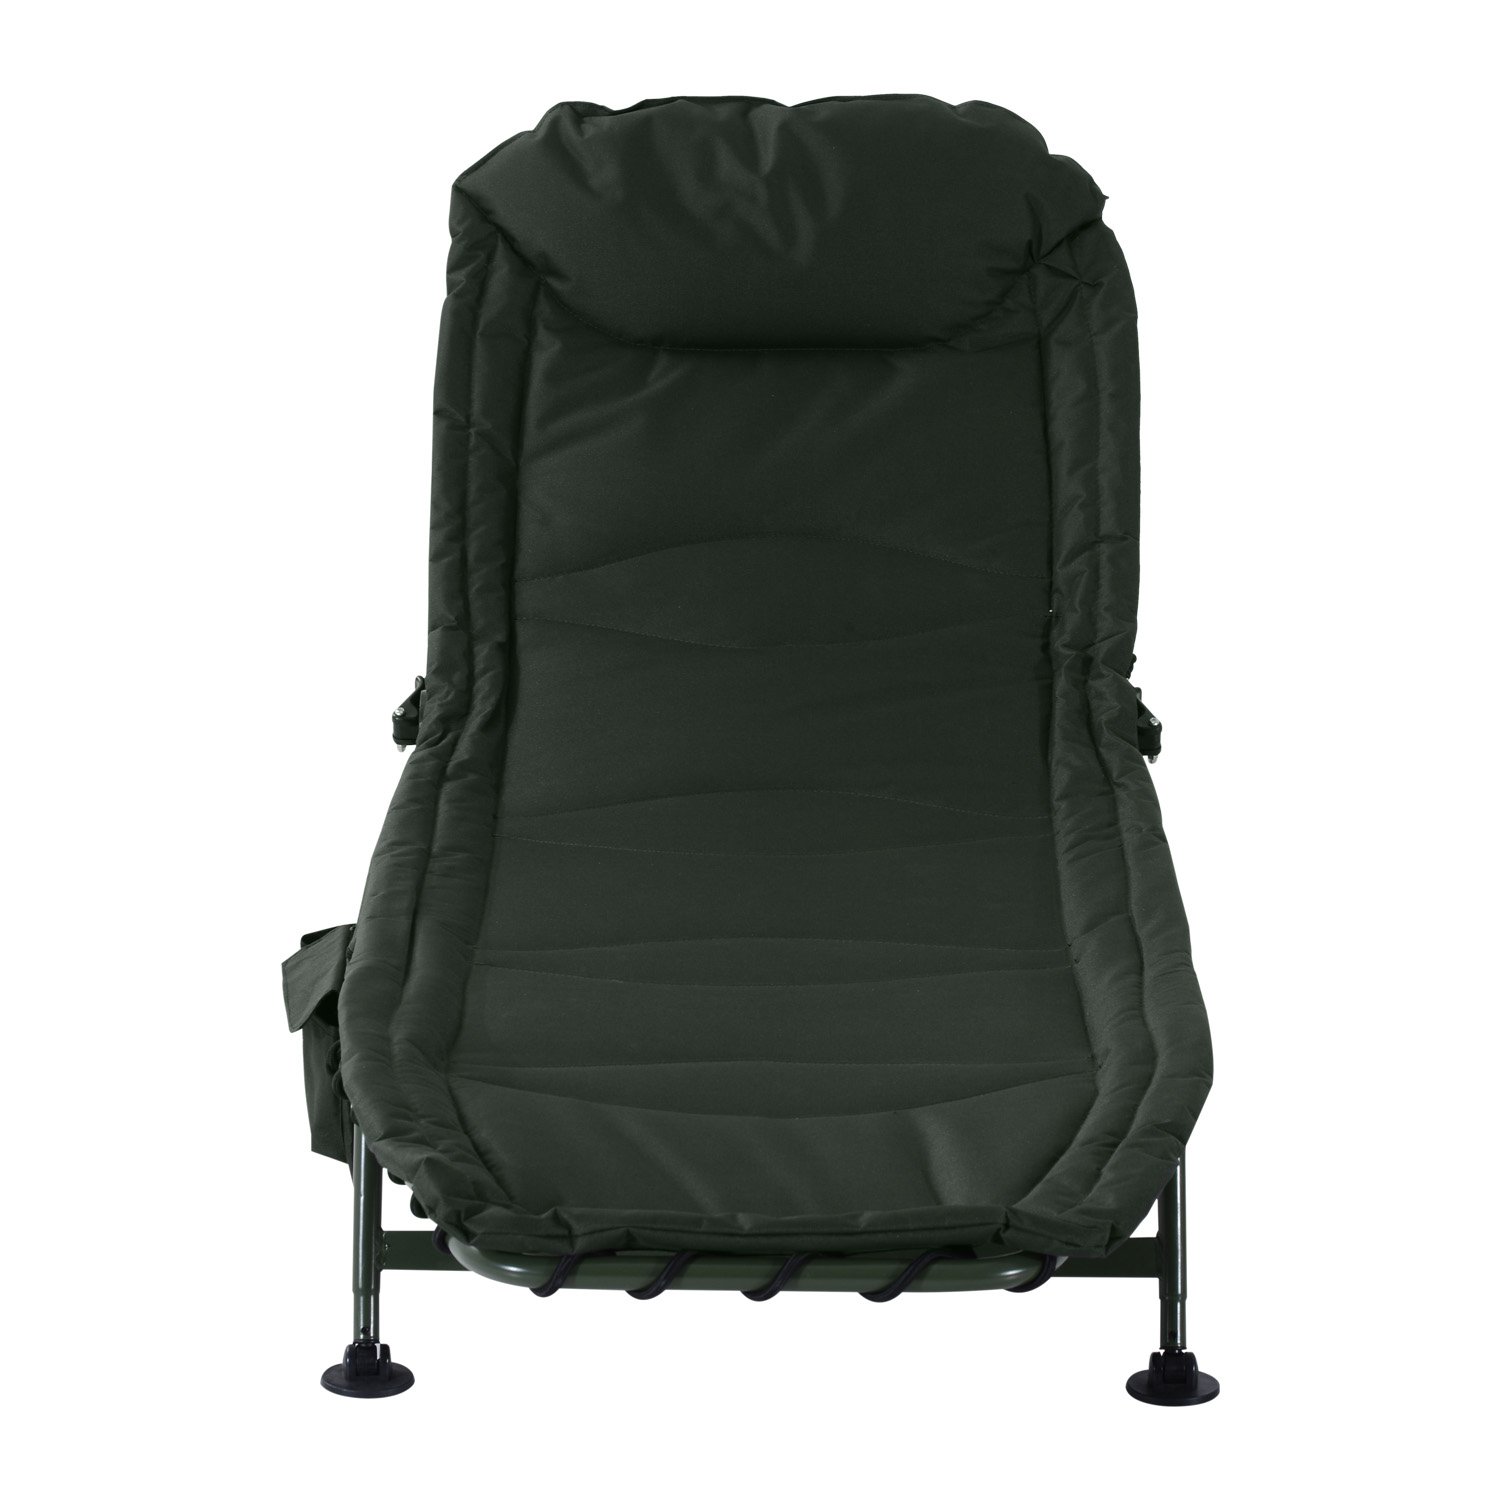 Folding Bag Chair Outsunny Folding Recliner Lounge Chair Outdoor Camping